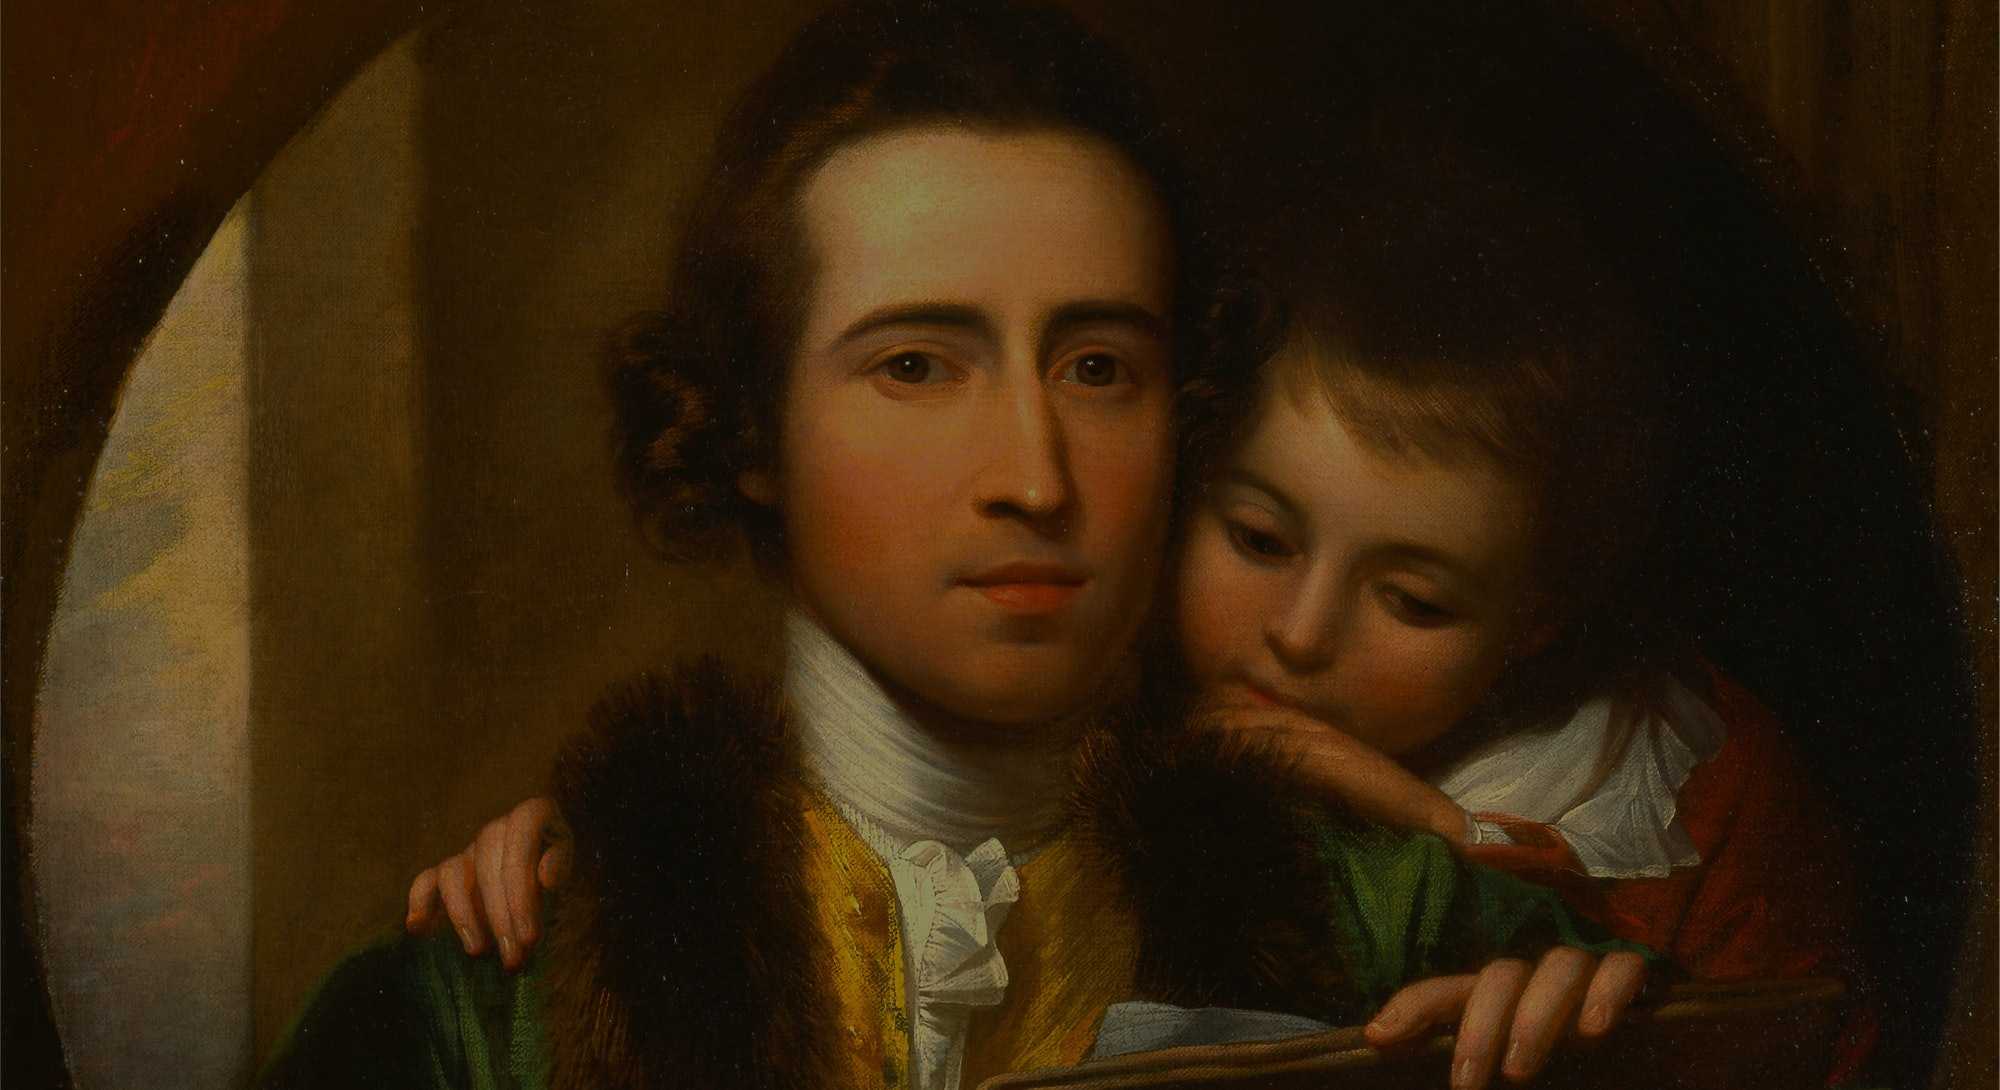 The Artist and His Son Raphael Self-Portrait with Raphael West, Benjamin West, 1738-1820